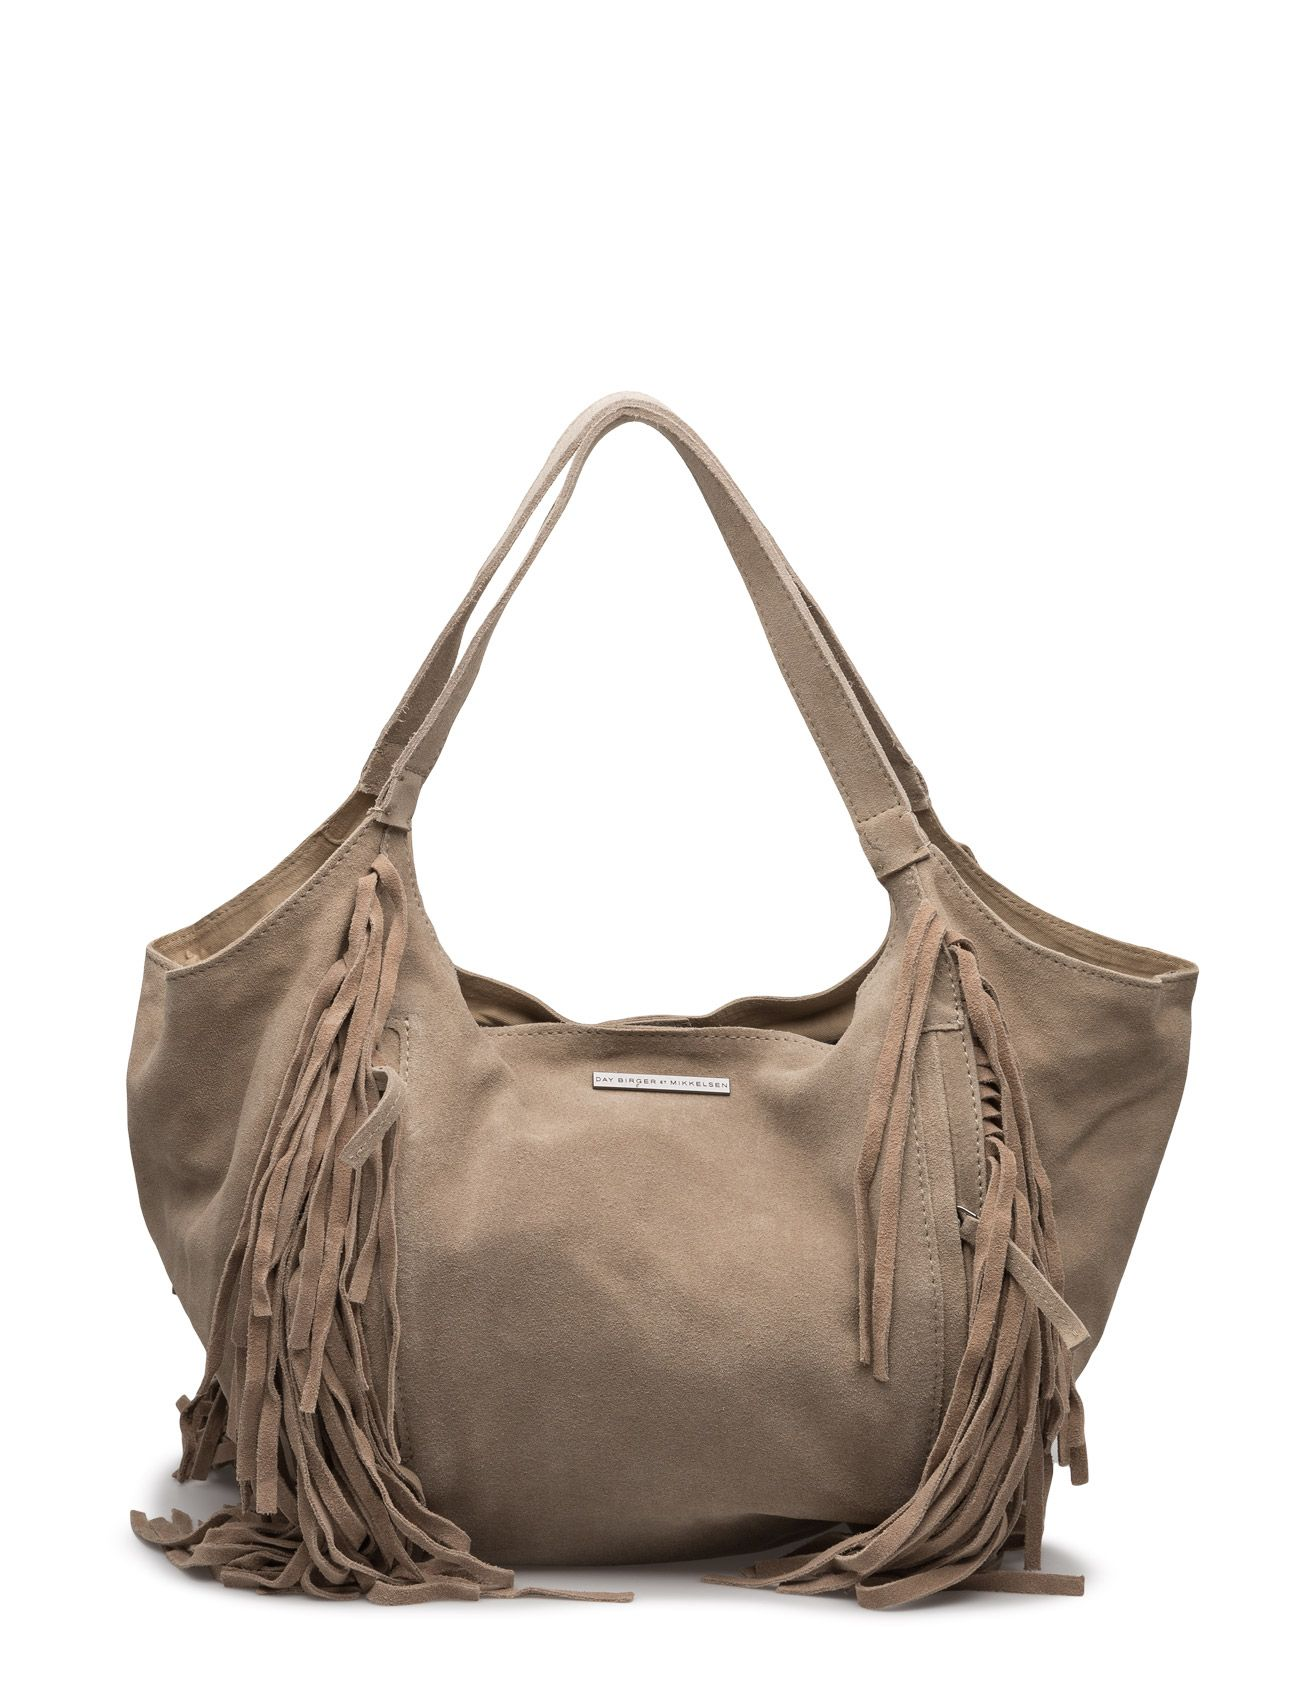 e0d72188b6c DAY BIRGER ET MIKKELSEN - SUEDE TASSEL BAG | Bags bags and more bags ...